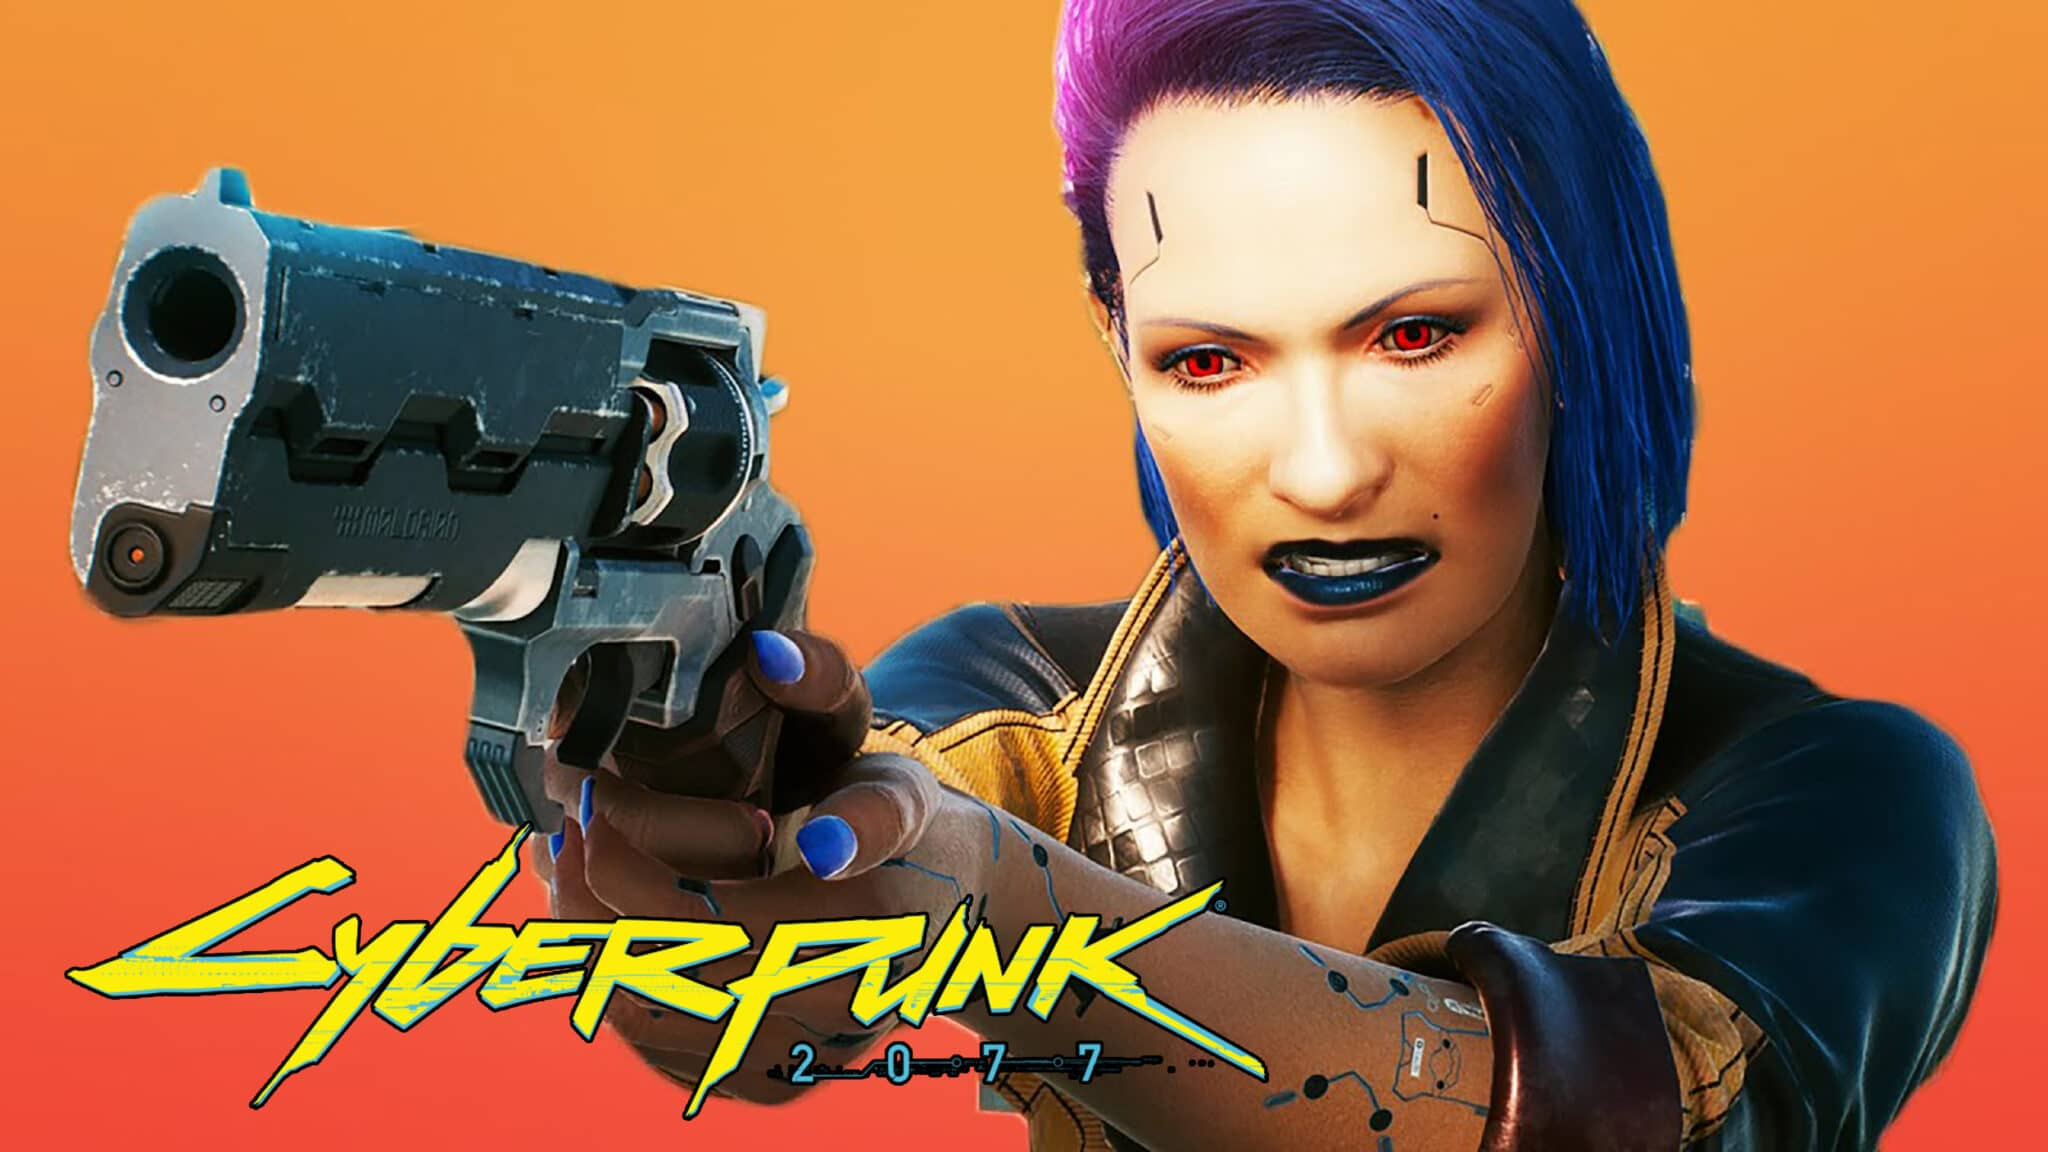 Every Iconic Weapon in Cyberpunk 2077